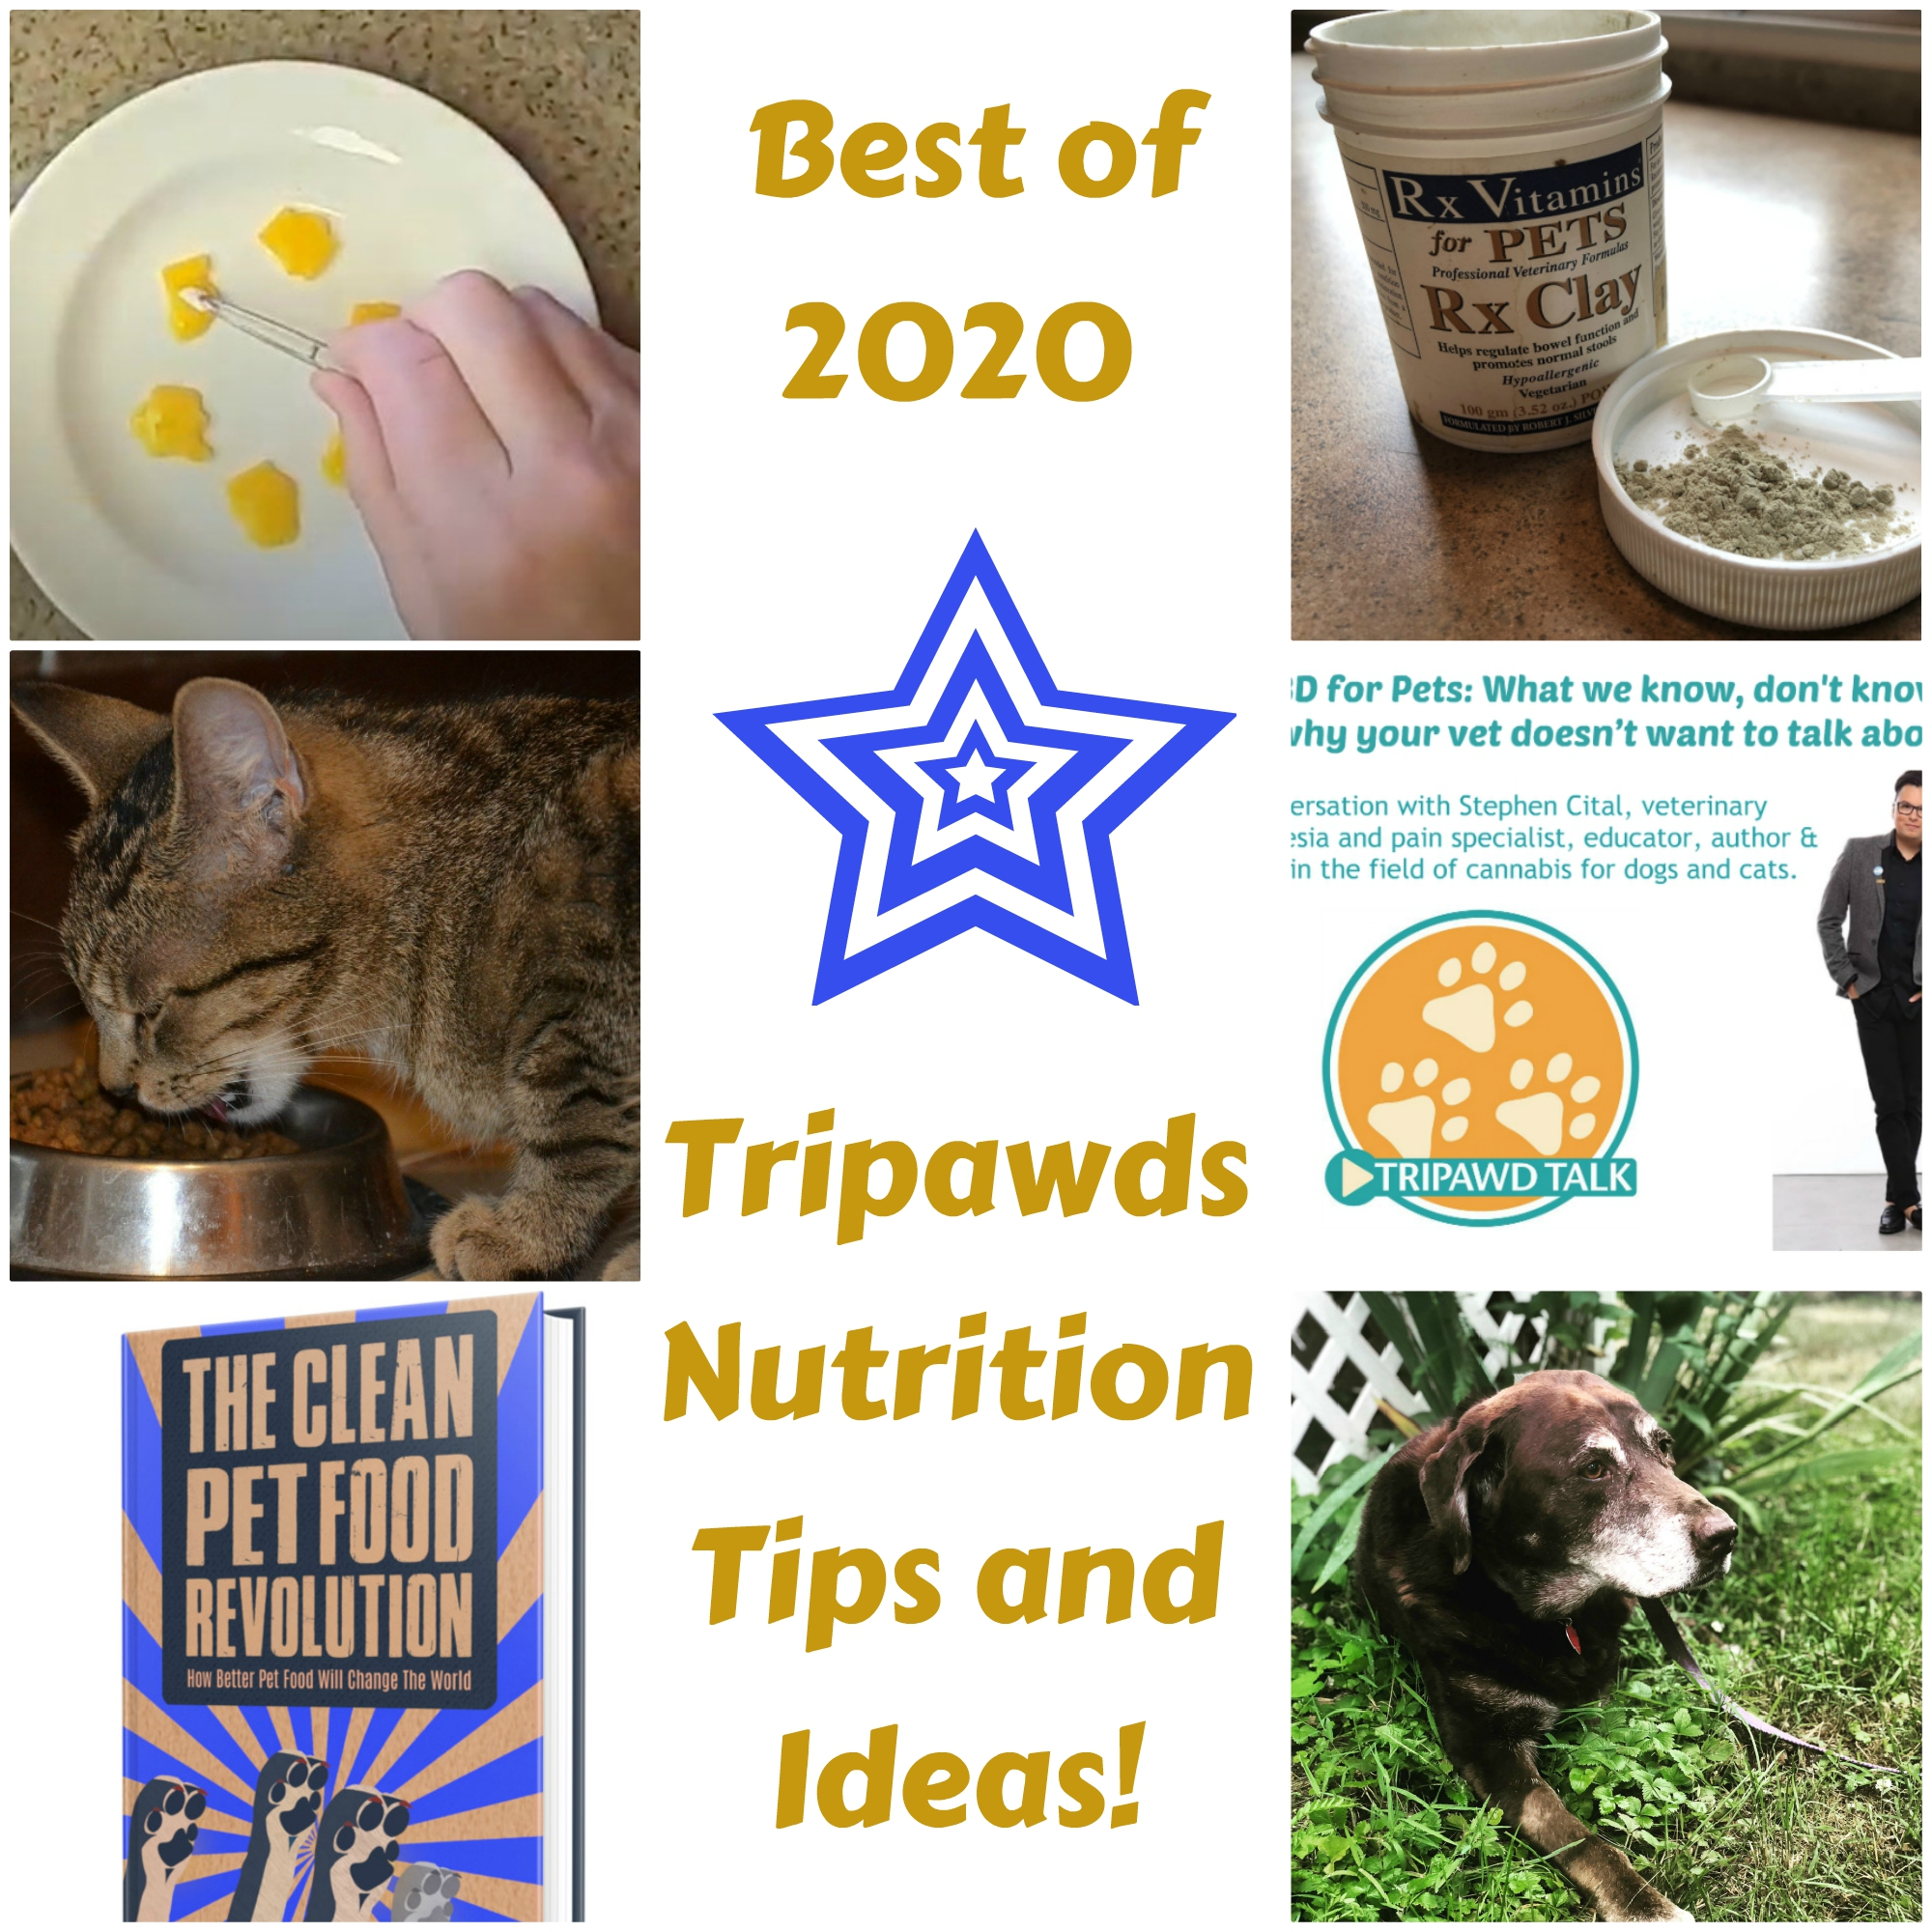 best Tripawds nutrition tips